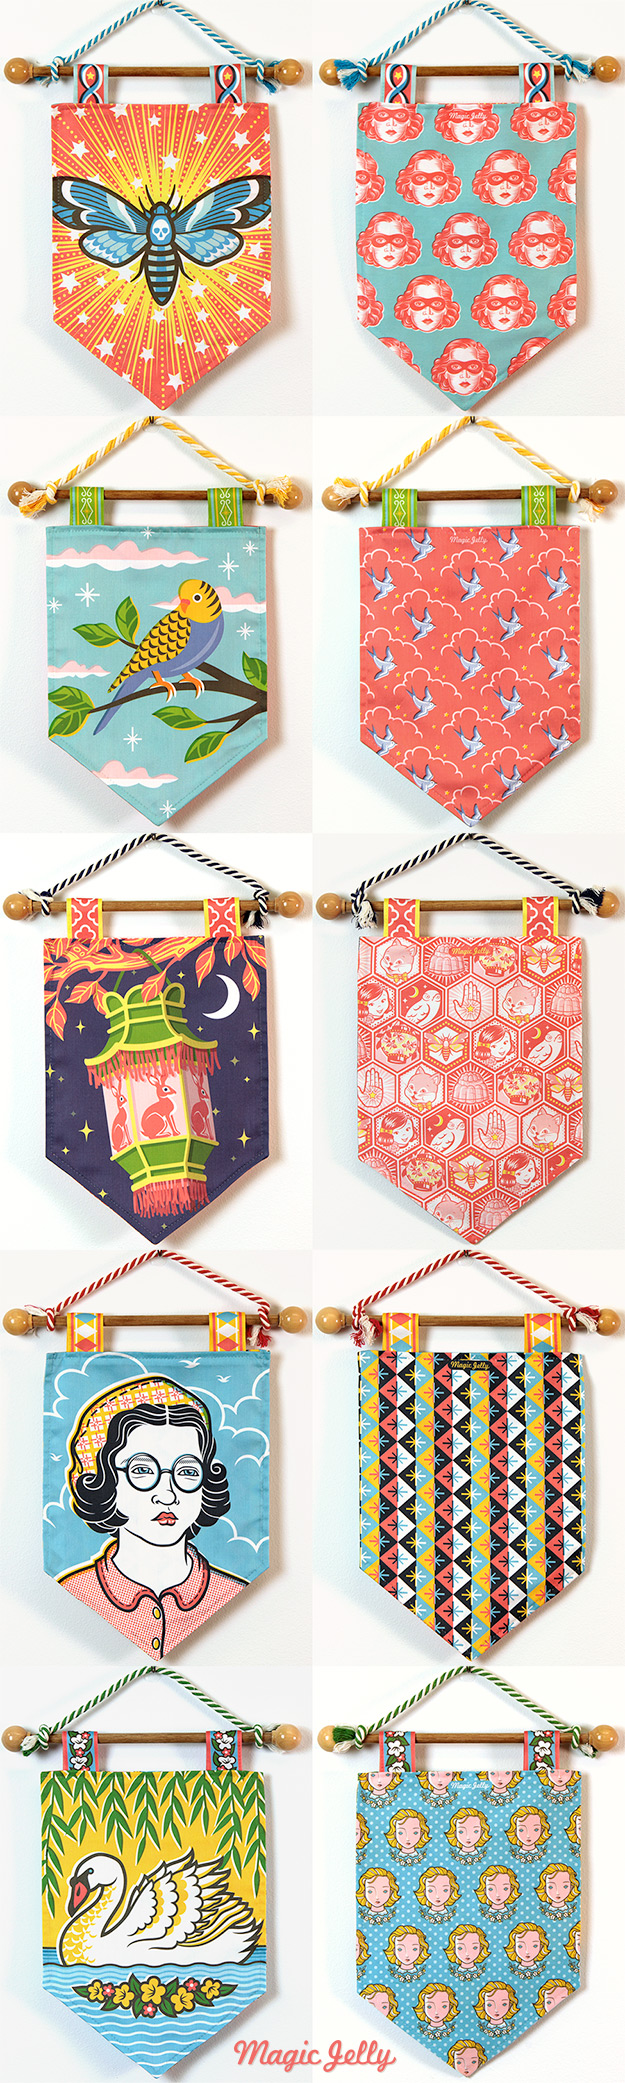 Magic Jelly double-sided pennants